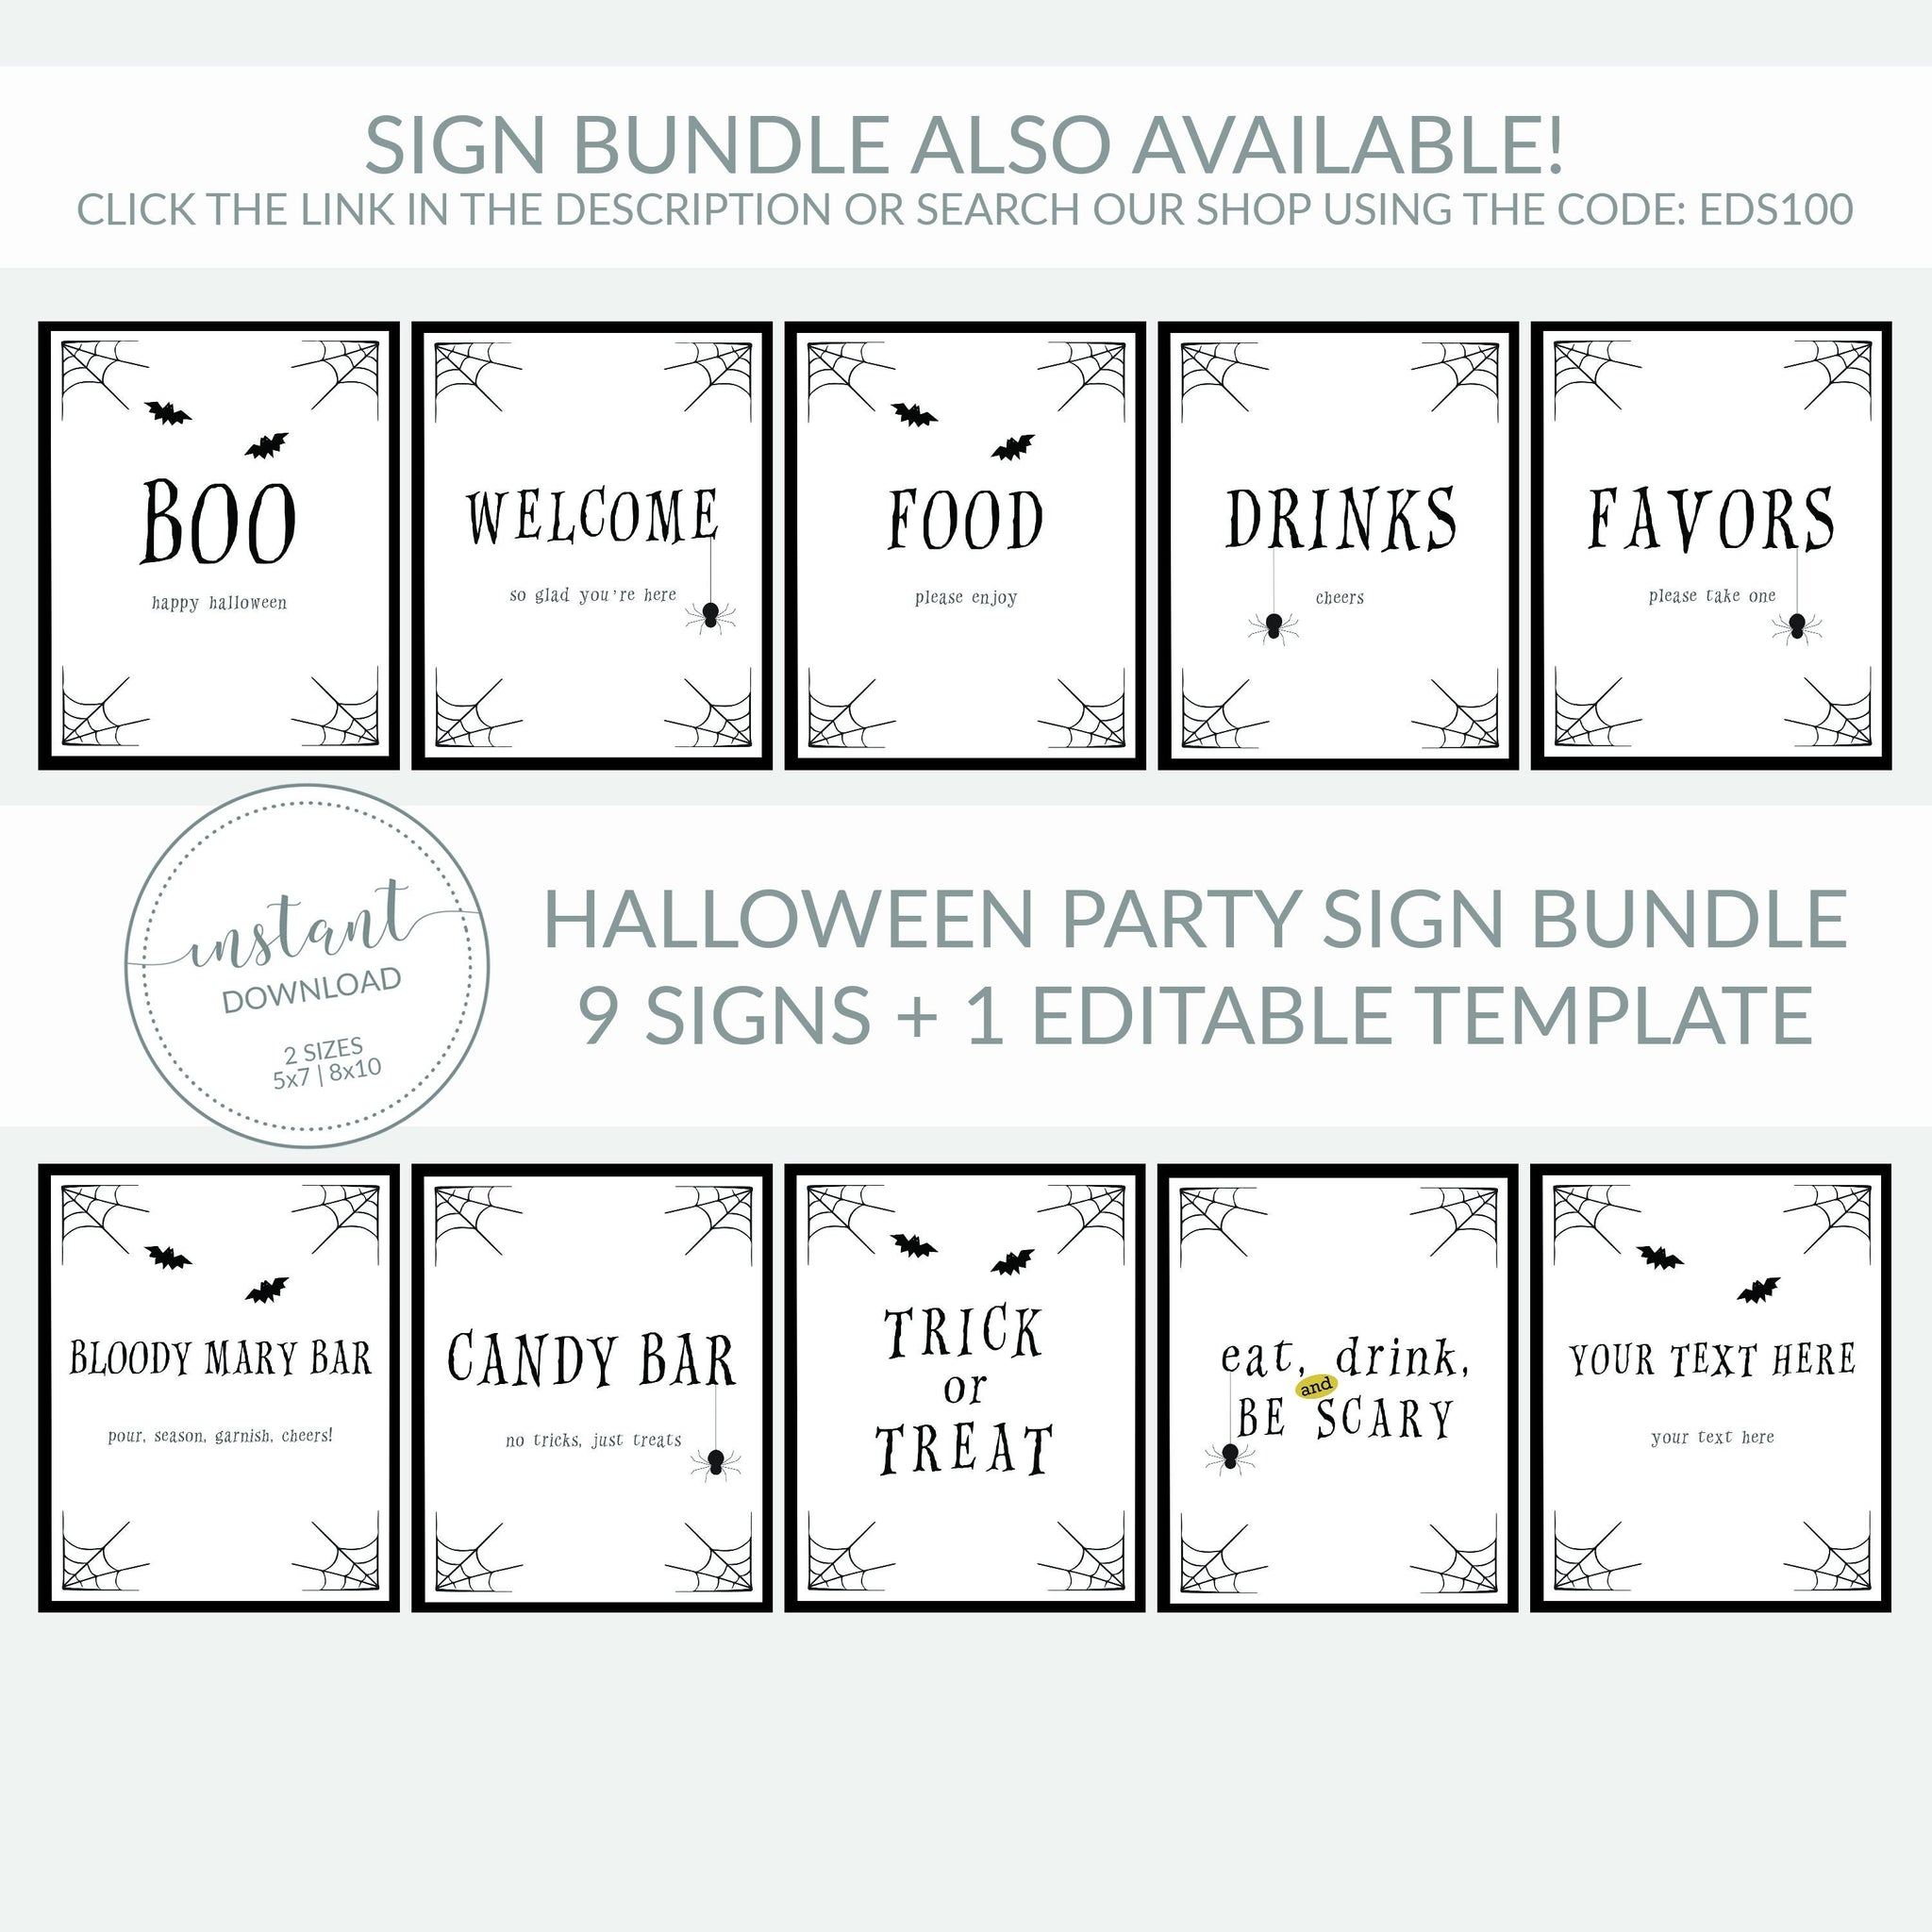 Eat Drink and Be Scary Sign Printable, Halloween Decor Spider, Halloween Decorations INSTANT DOWNLOAD, Halloween Party Decor - EDS100